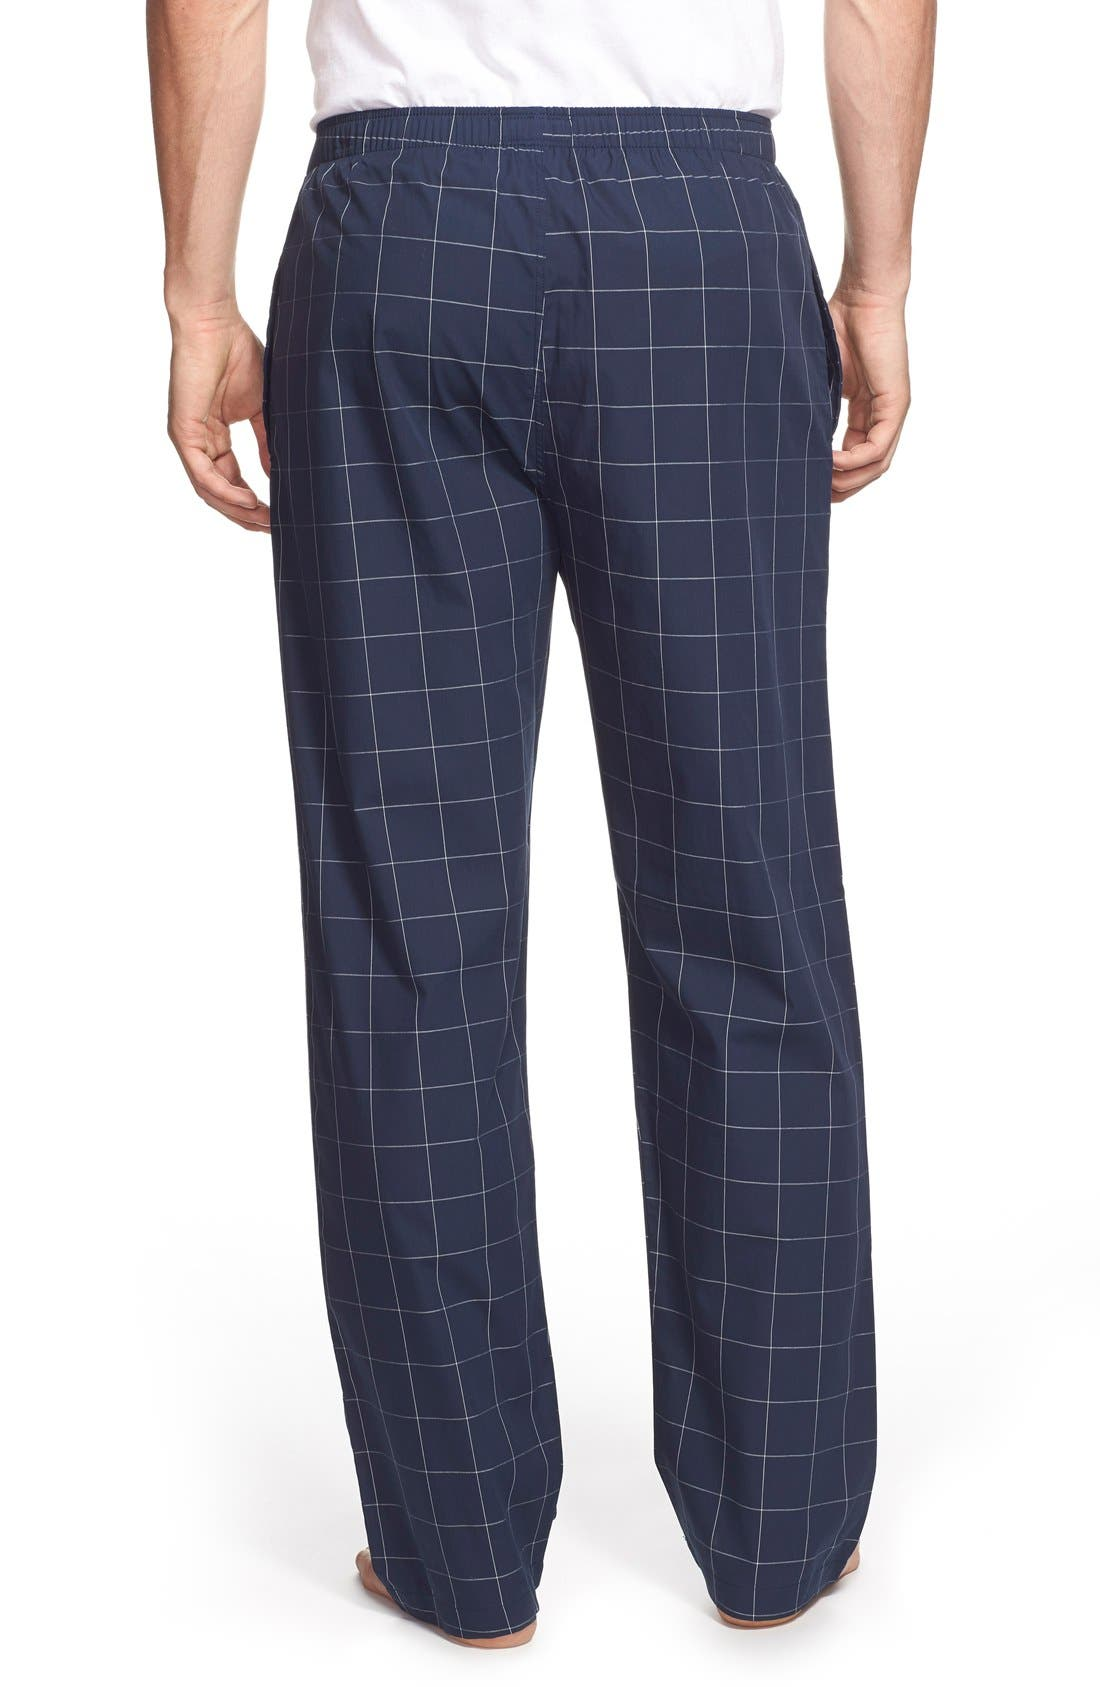 Cotton Pajama Pants,                             Alternate thumbnail 2, color,                             CRUISE NAVY